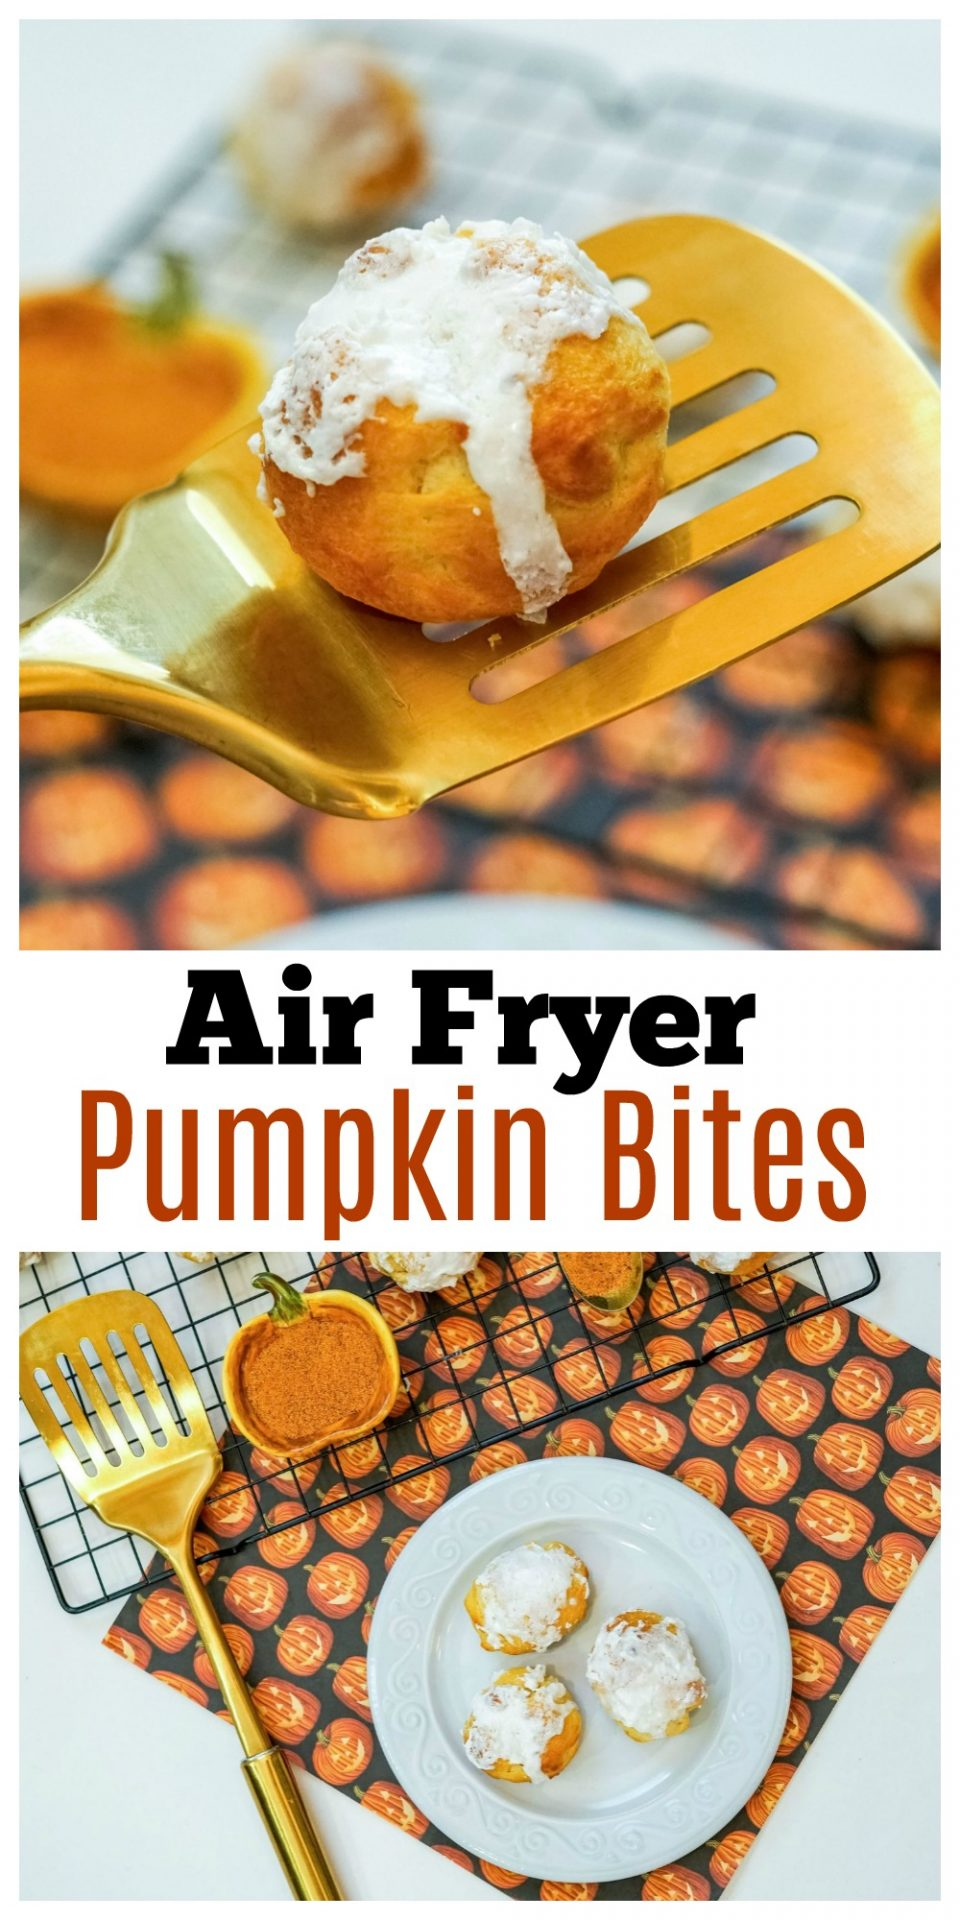 If you are a fan of pumpkin treats, this recipe for Air Fryer Pumpkin Bites is going to blow your socks off!